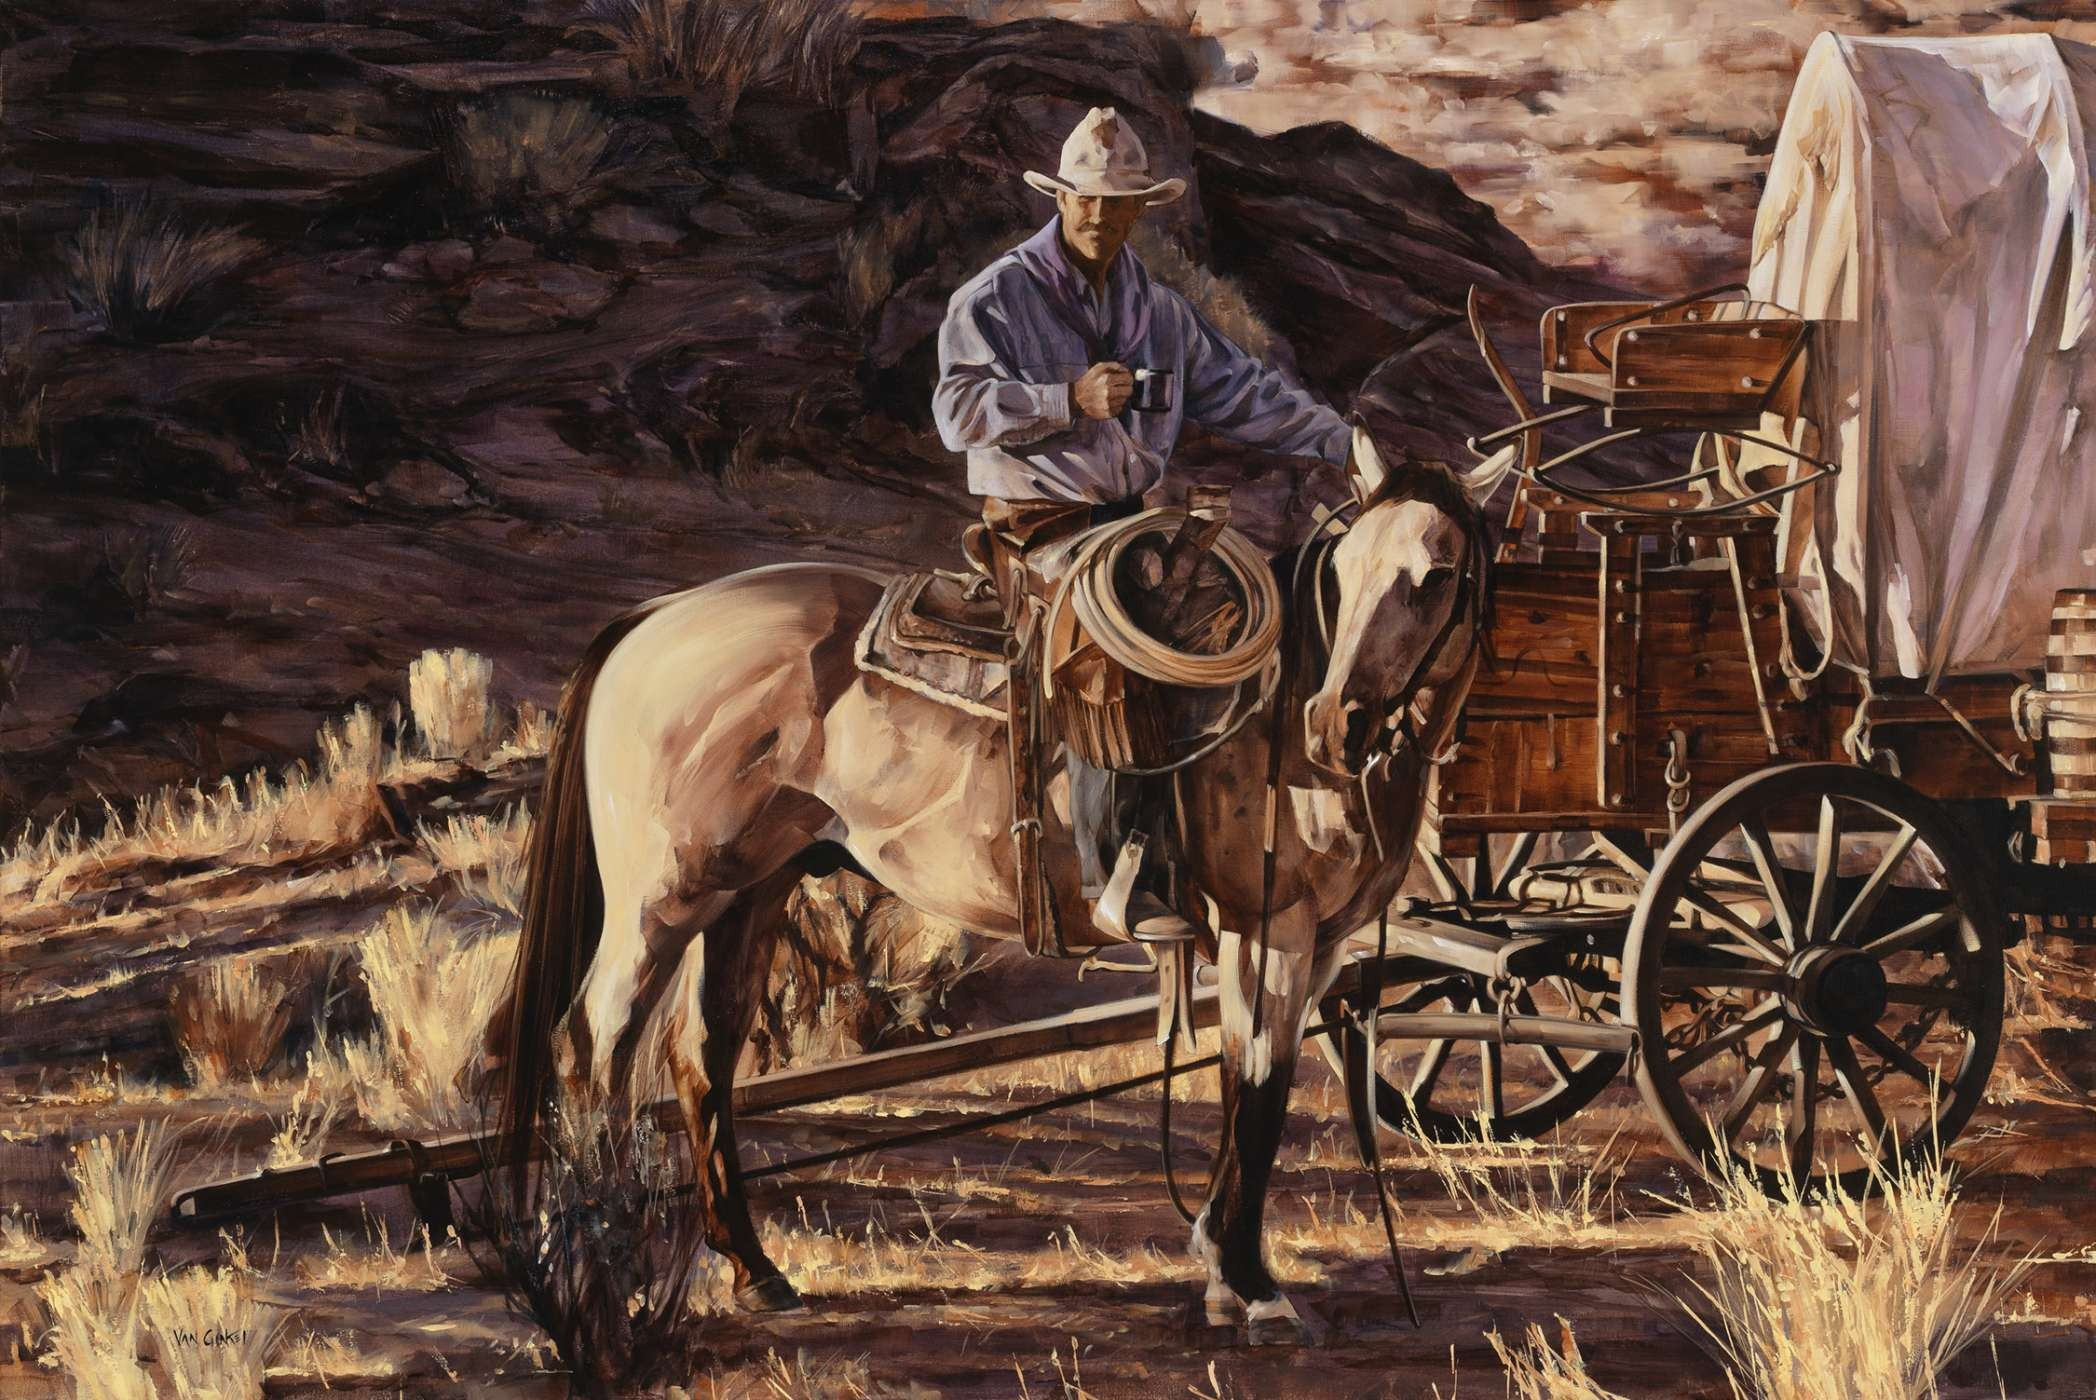 painting by Calgary artist Paul Van Ginkel